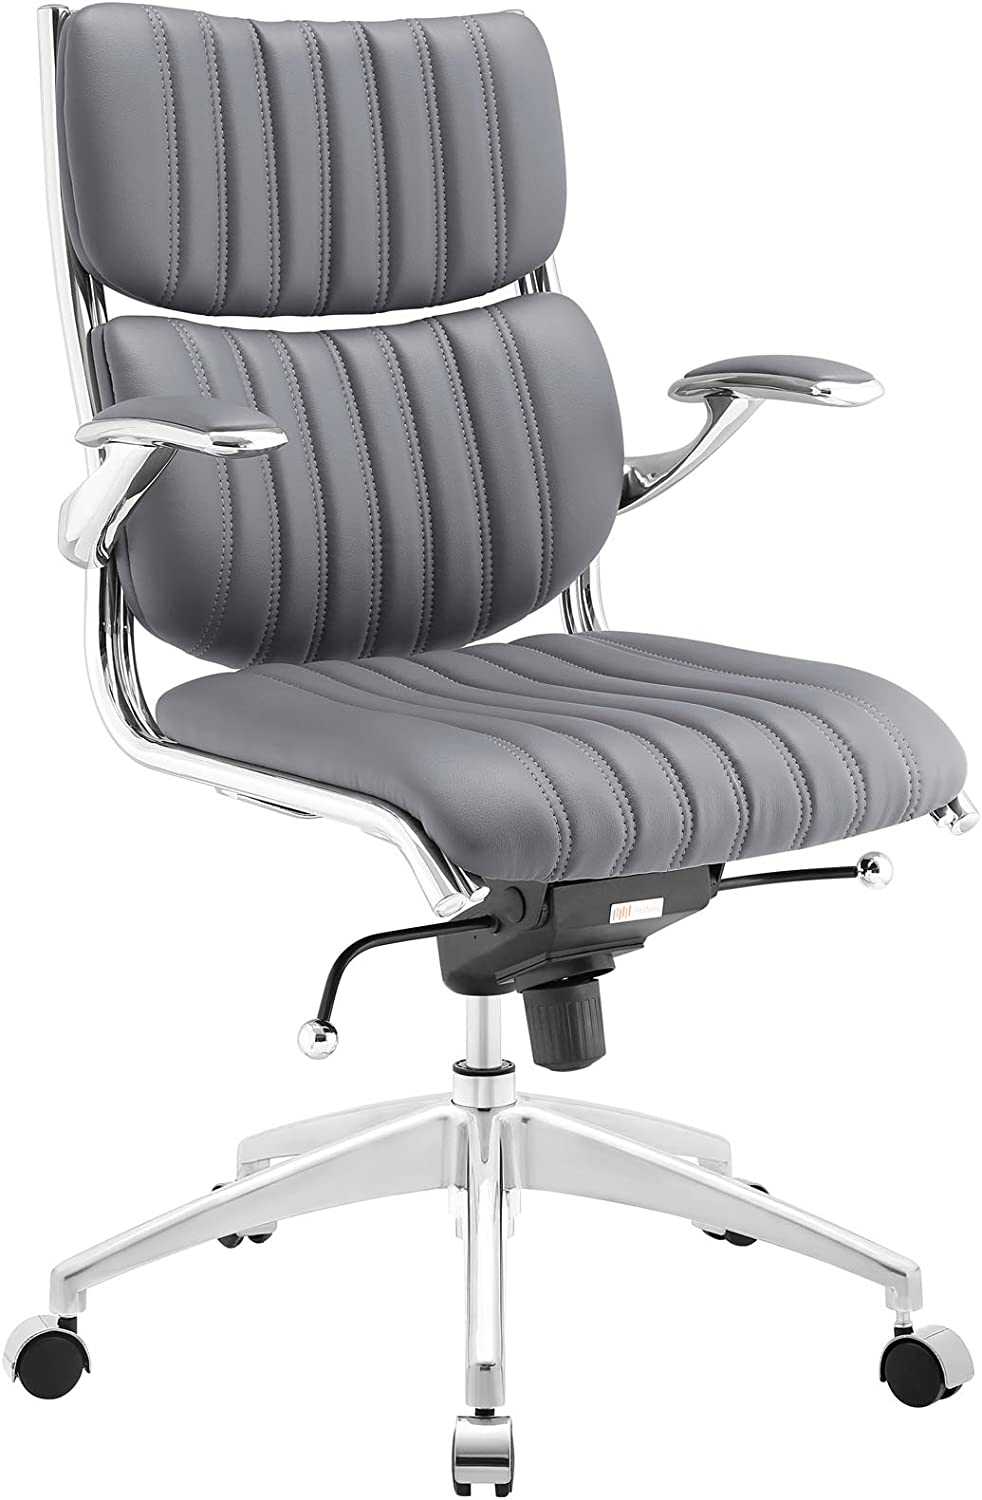 Modway Escape Ribbed Faux Leather Ergonomic Computer Desk Office Chair in Gray